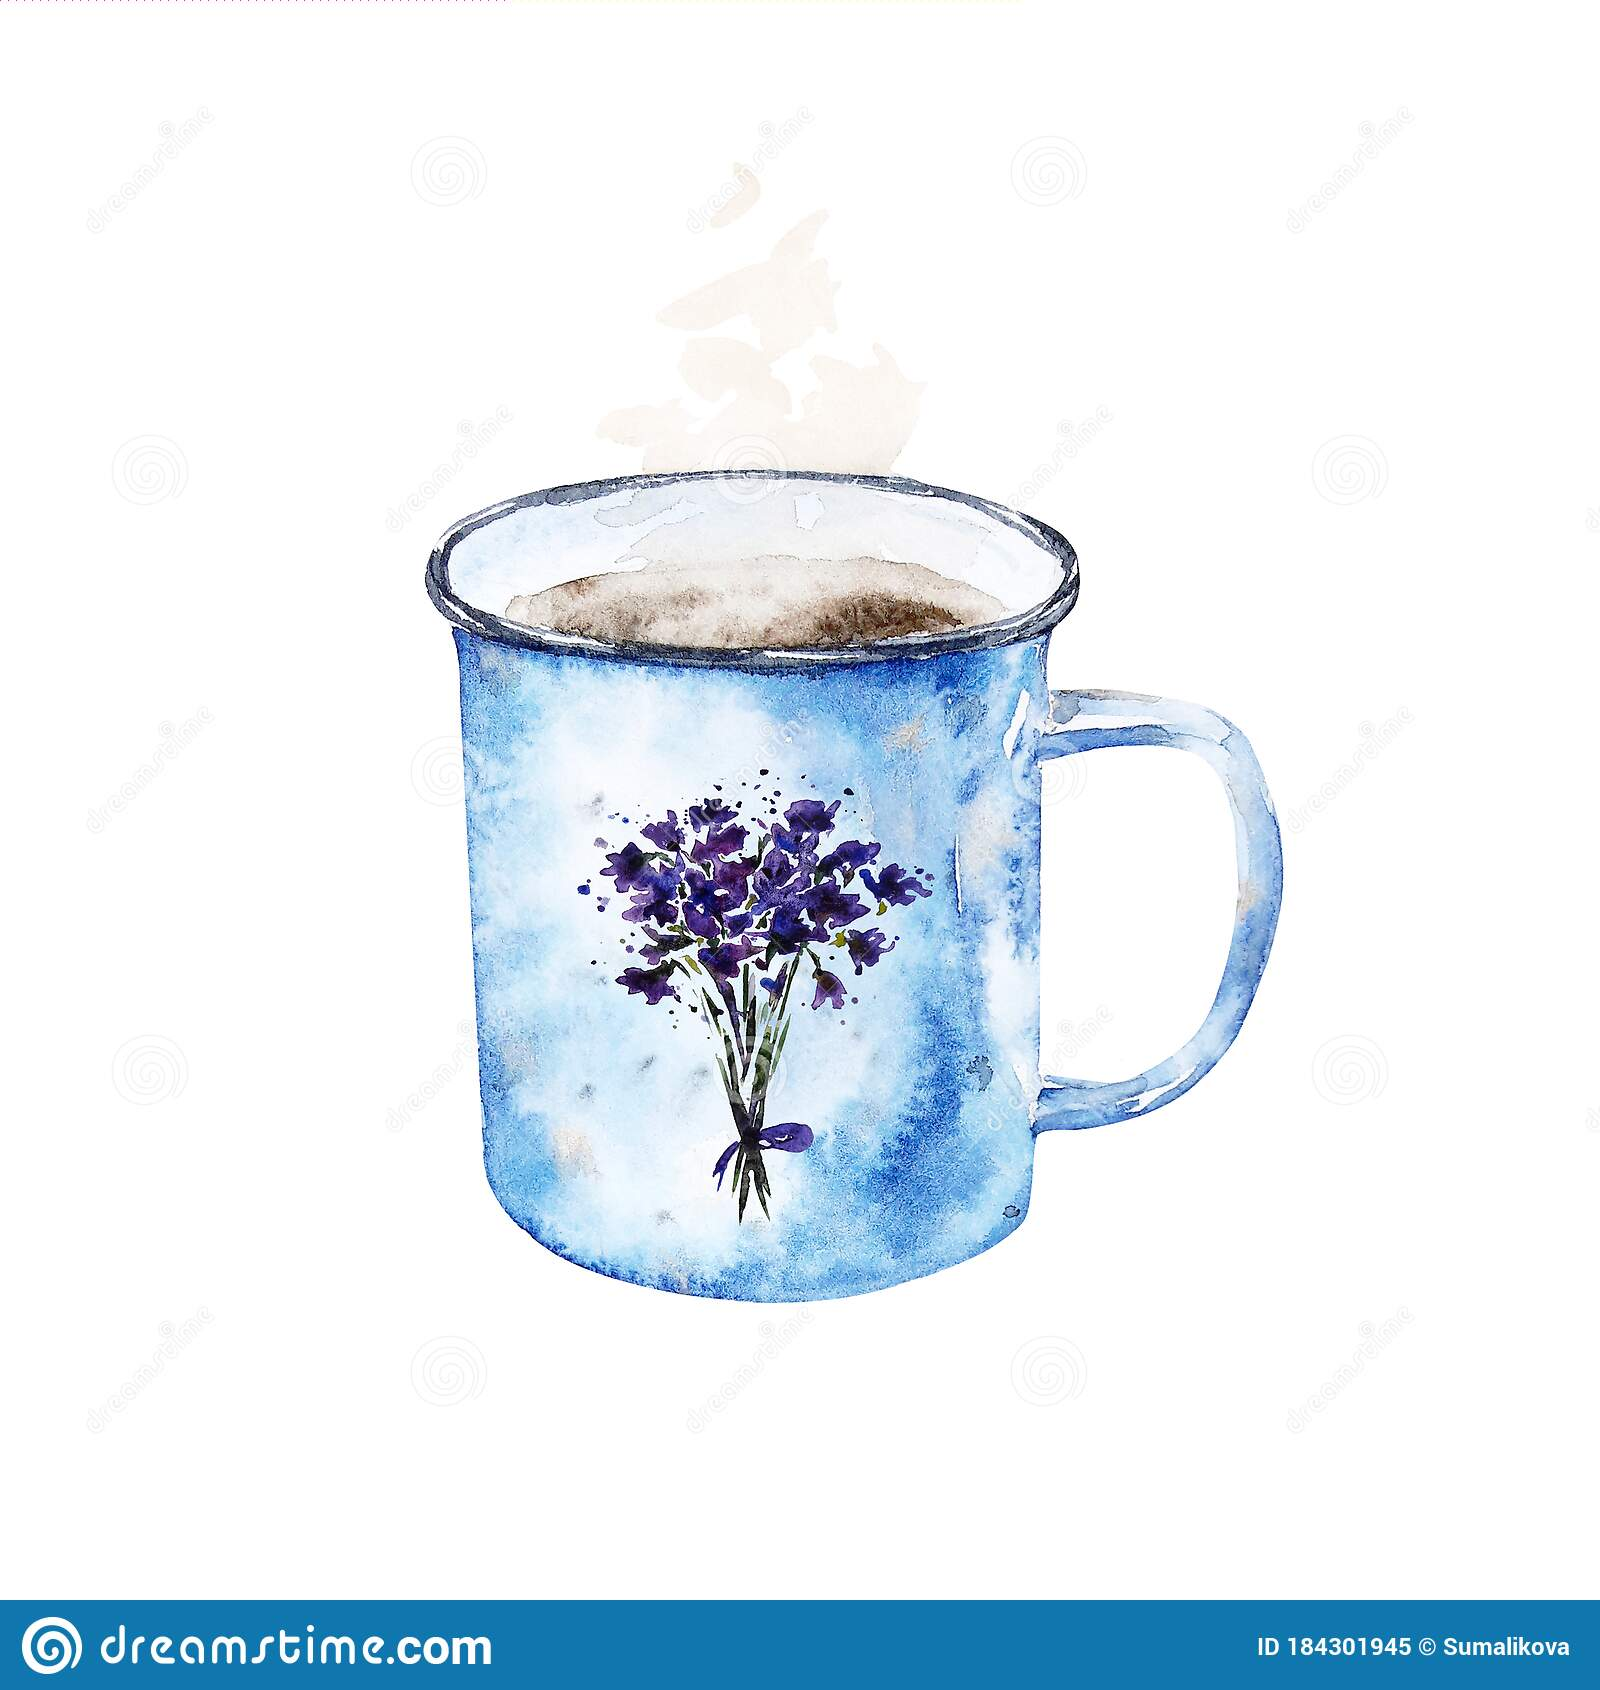 Watercolor Vintage Enamel Coffee Mug With Cute Printed Flowers Stock Illustration Illustration Of Fashion Isolated 184301945